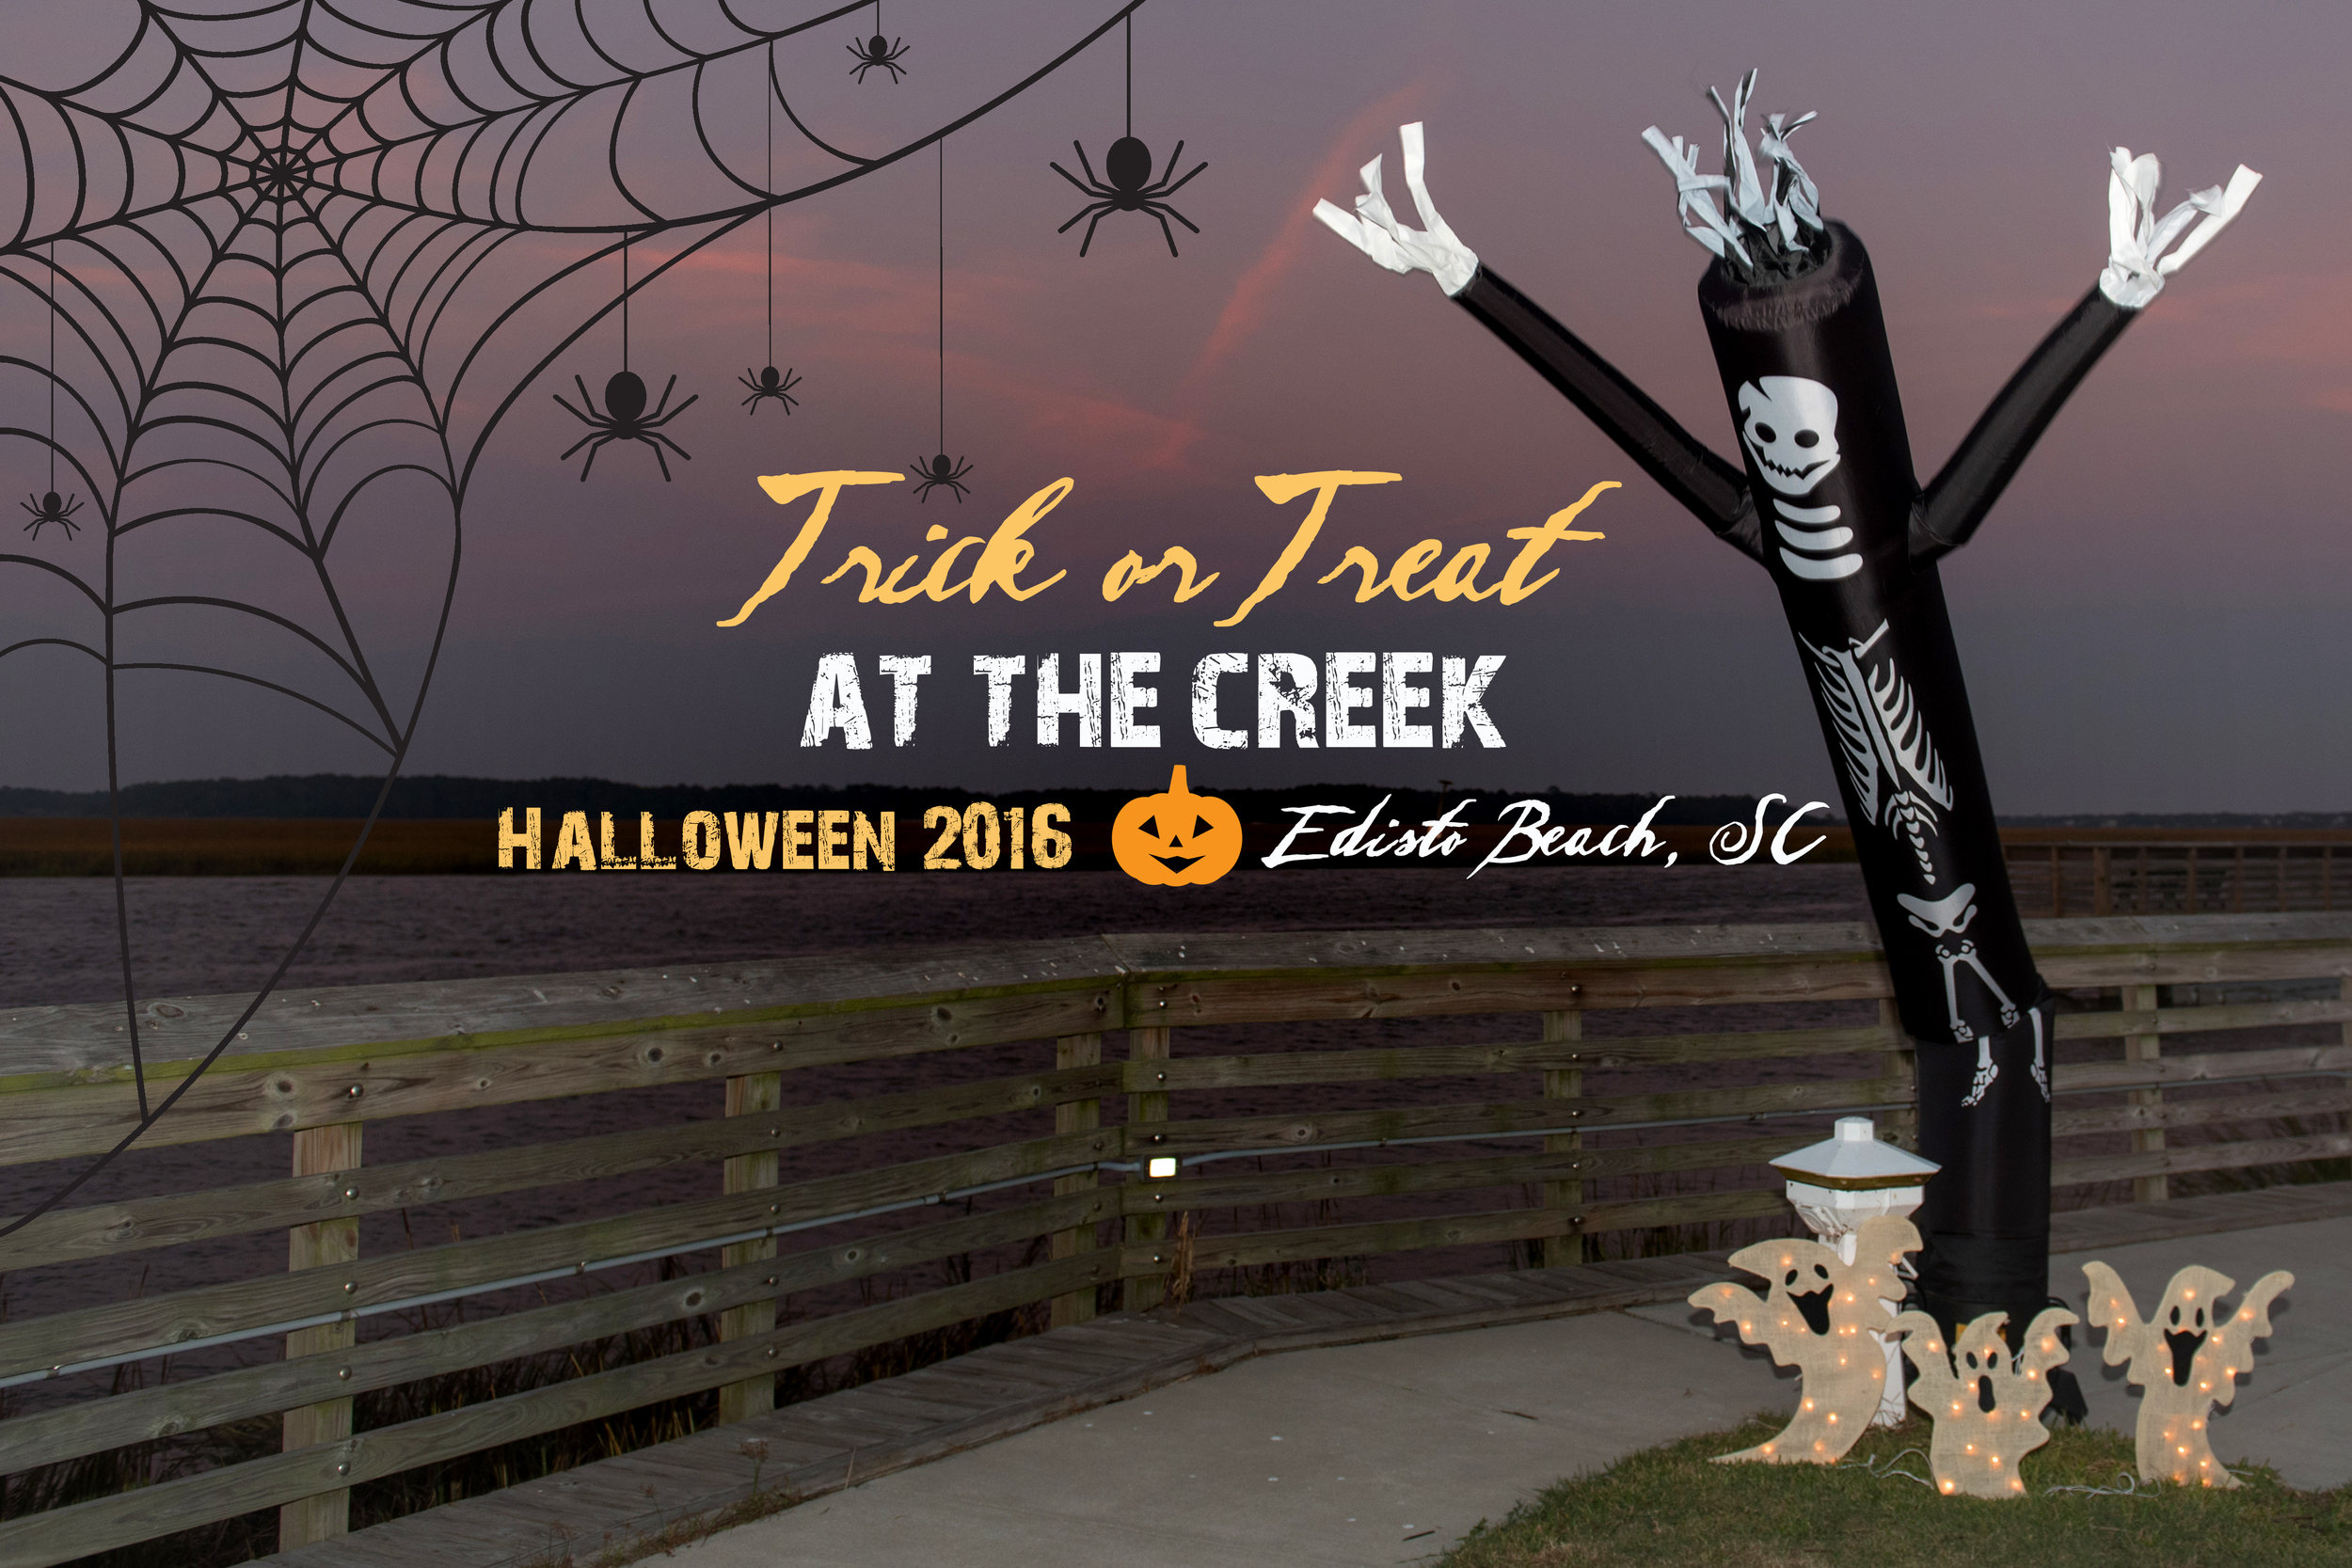 Trick or Treat at the Creek 2016